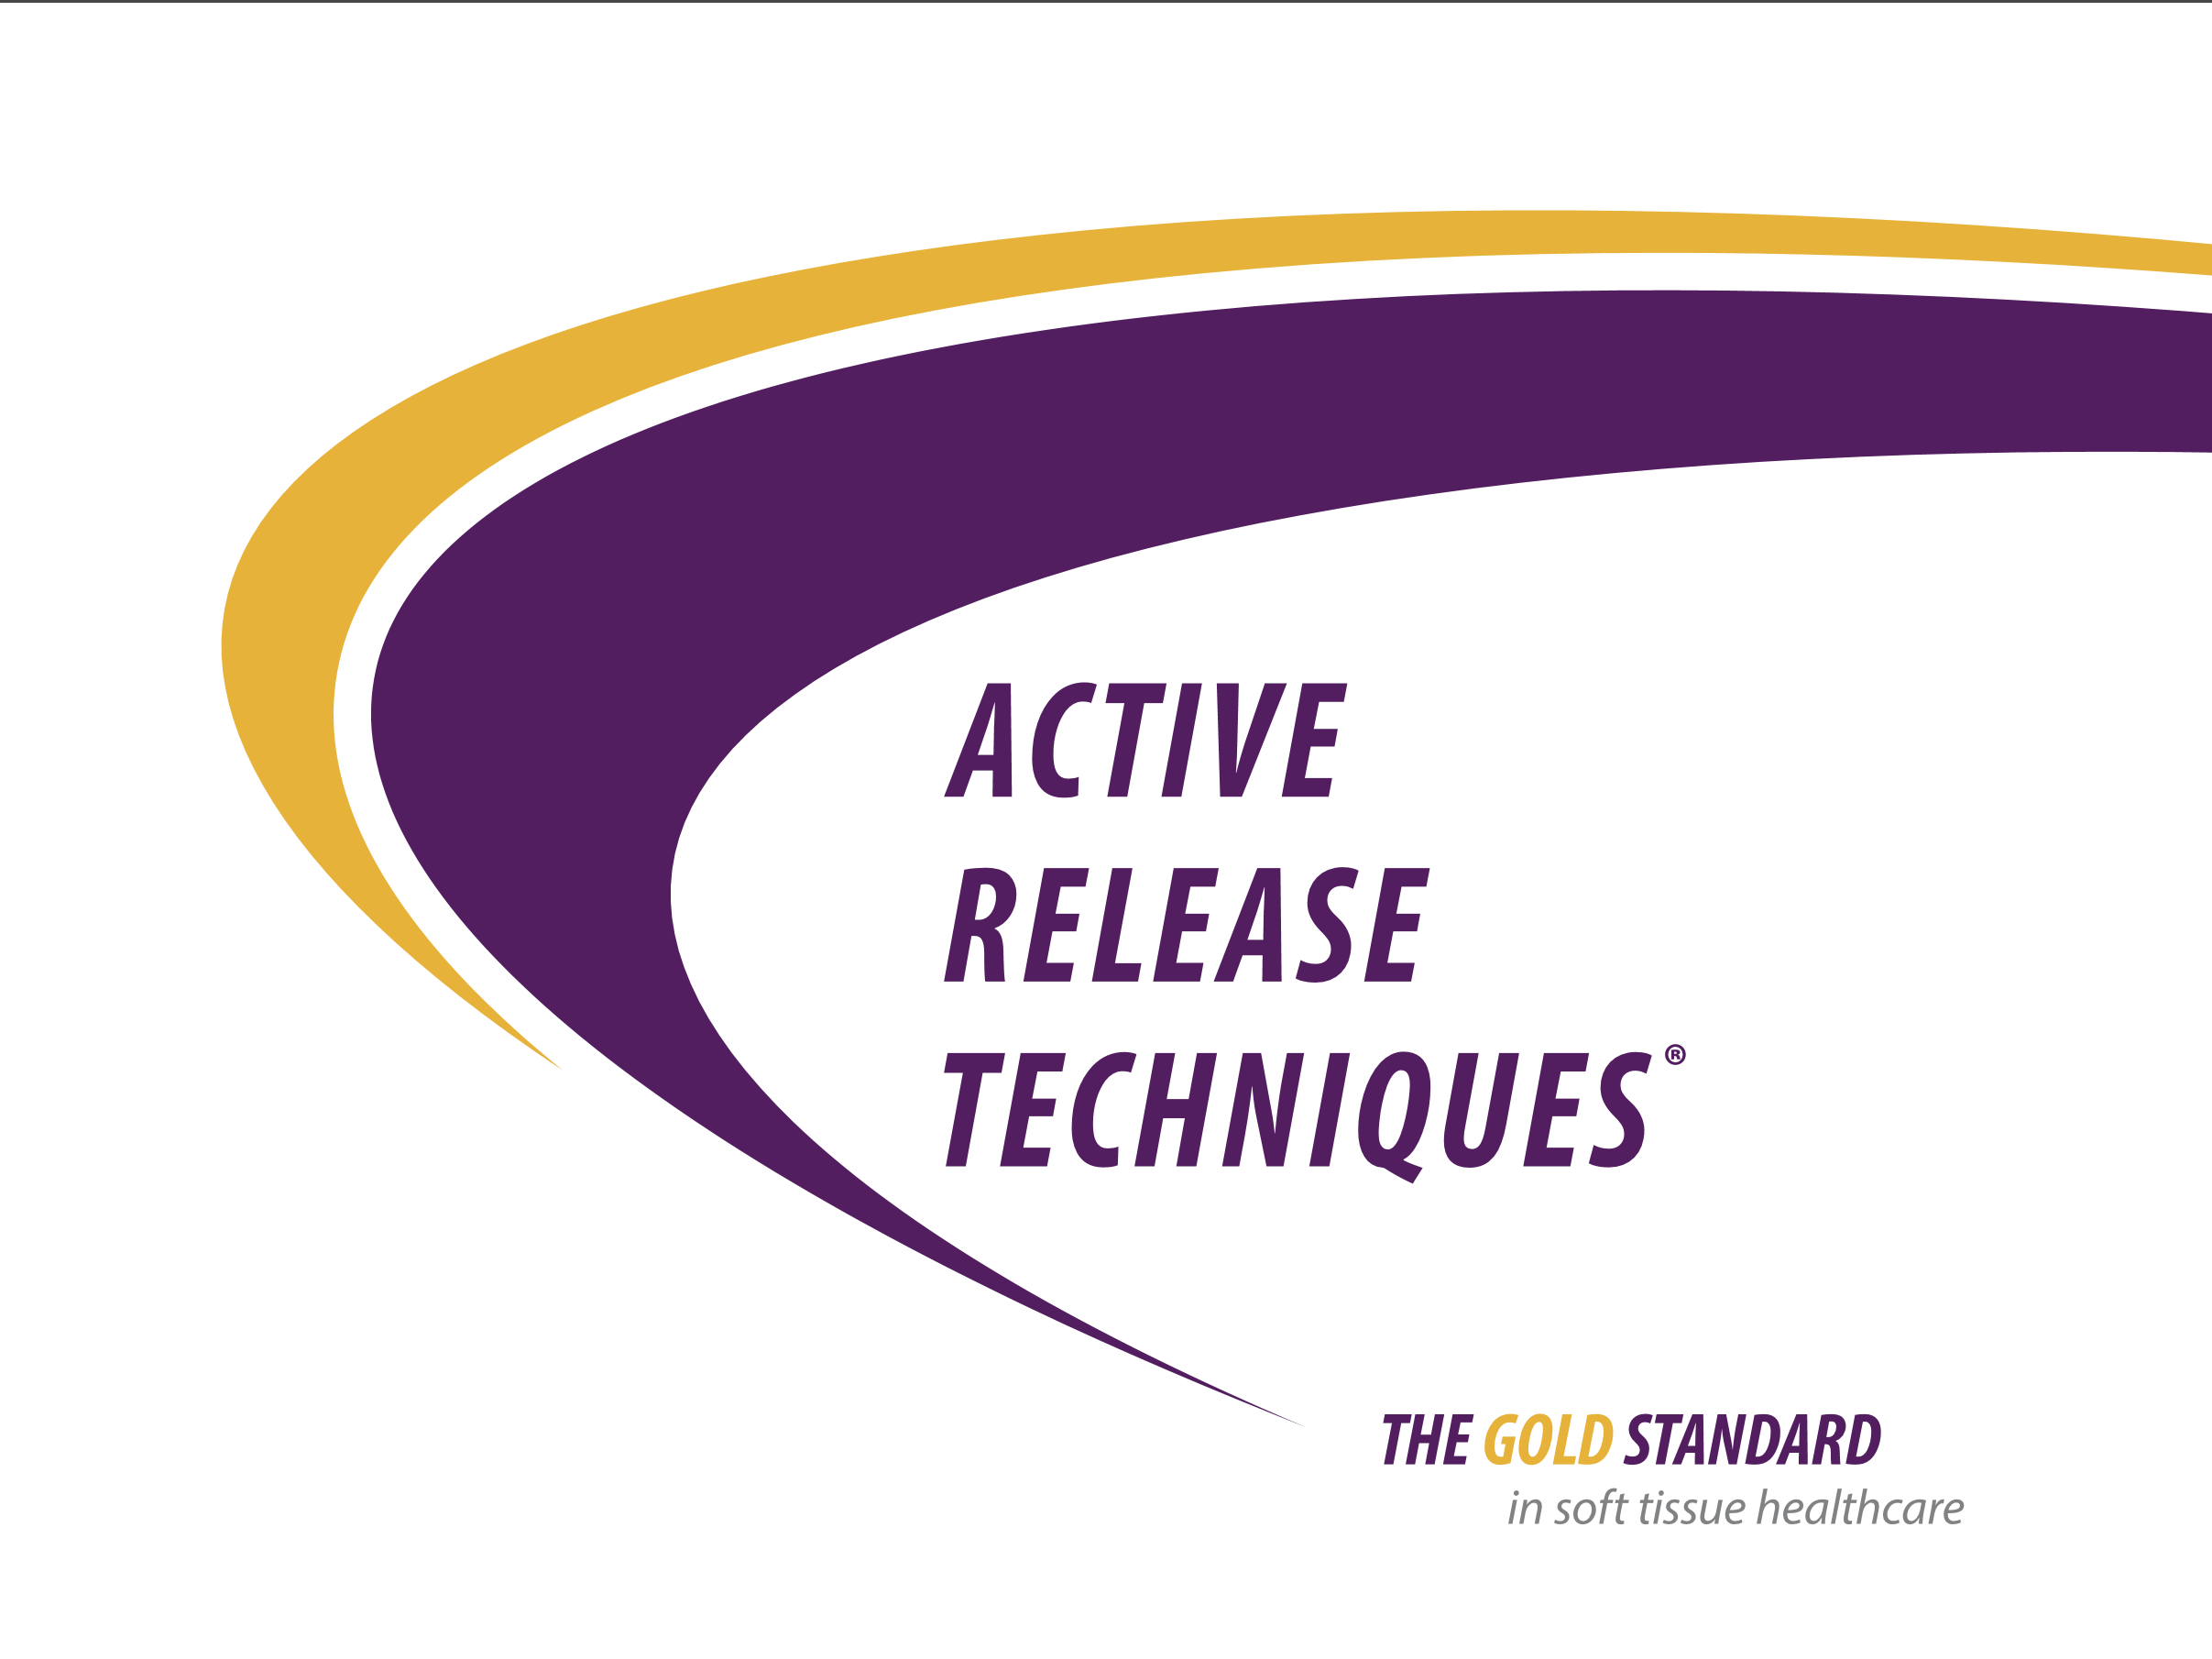 Short introduction to Active Release Techniques